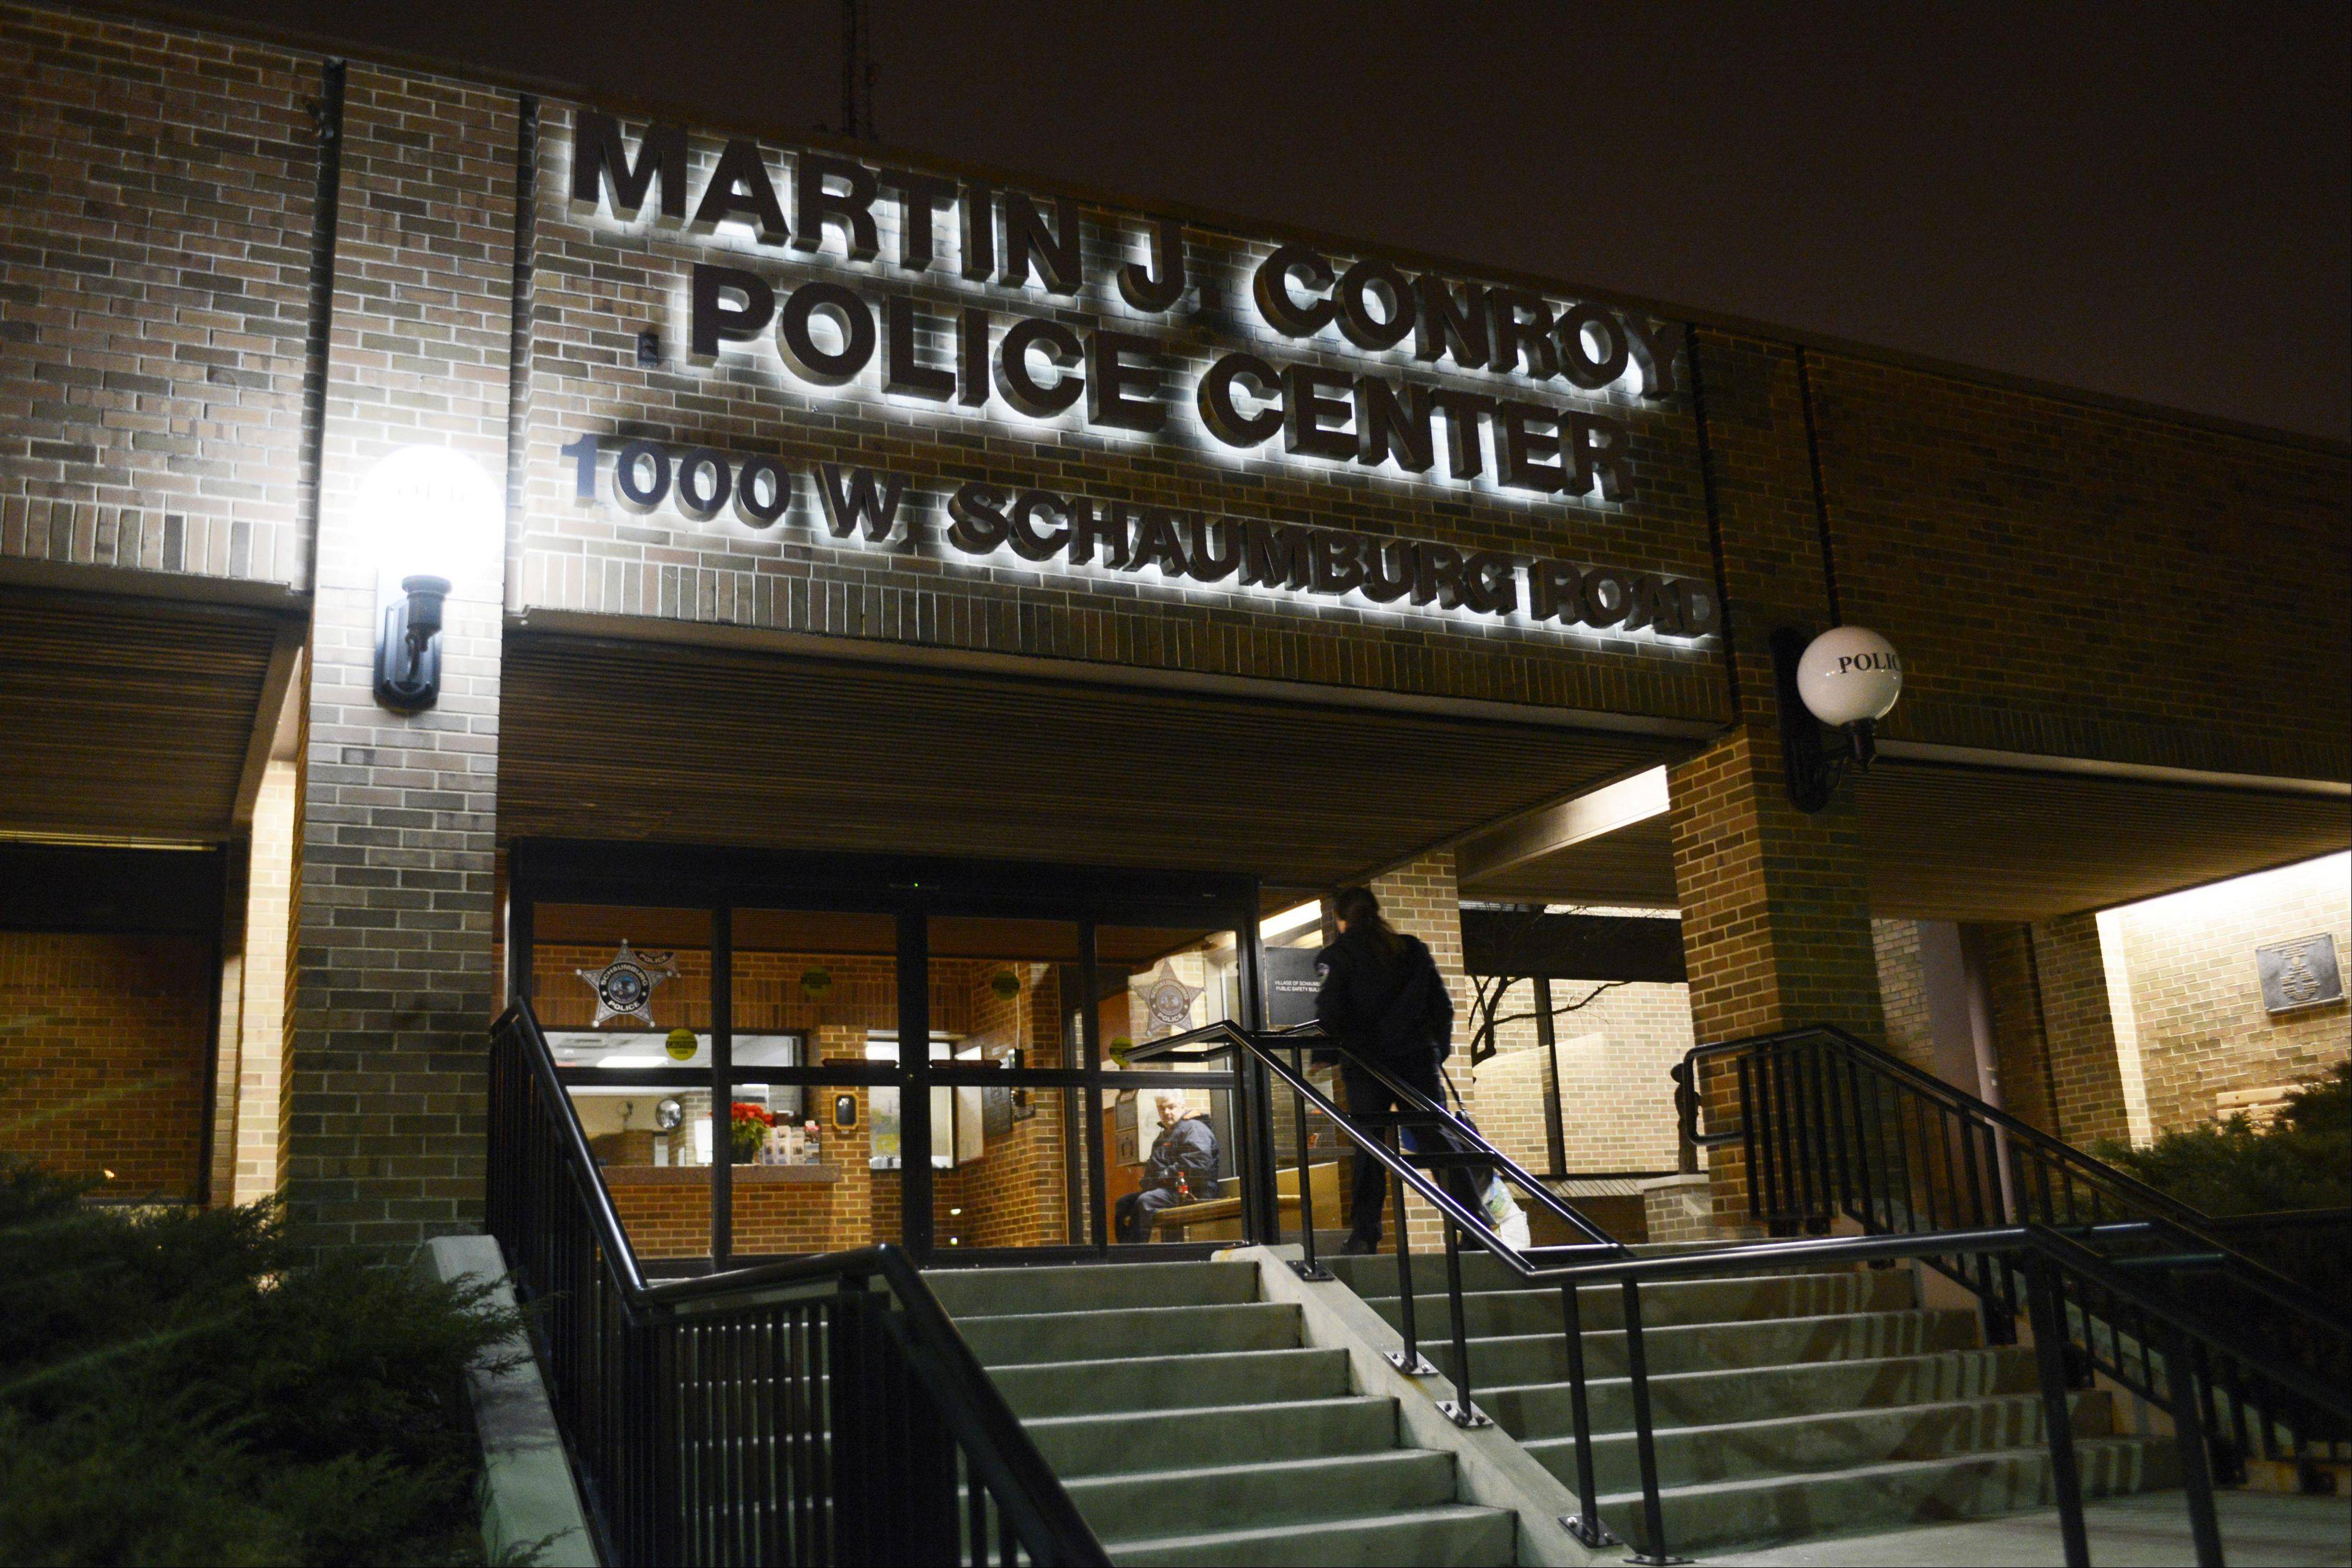 Federal agents from the U.S. Drug Enforcement Administration reportedly served search warrants Wednesday at the Schaumburg police department after the arrests of three village police officers on drug-related charges.